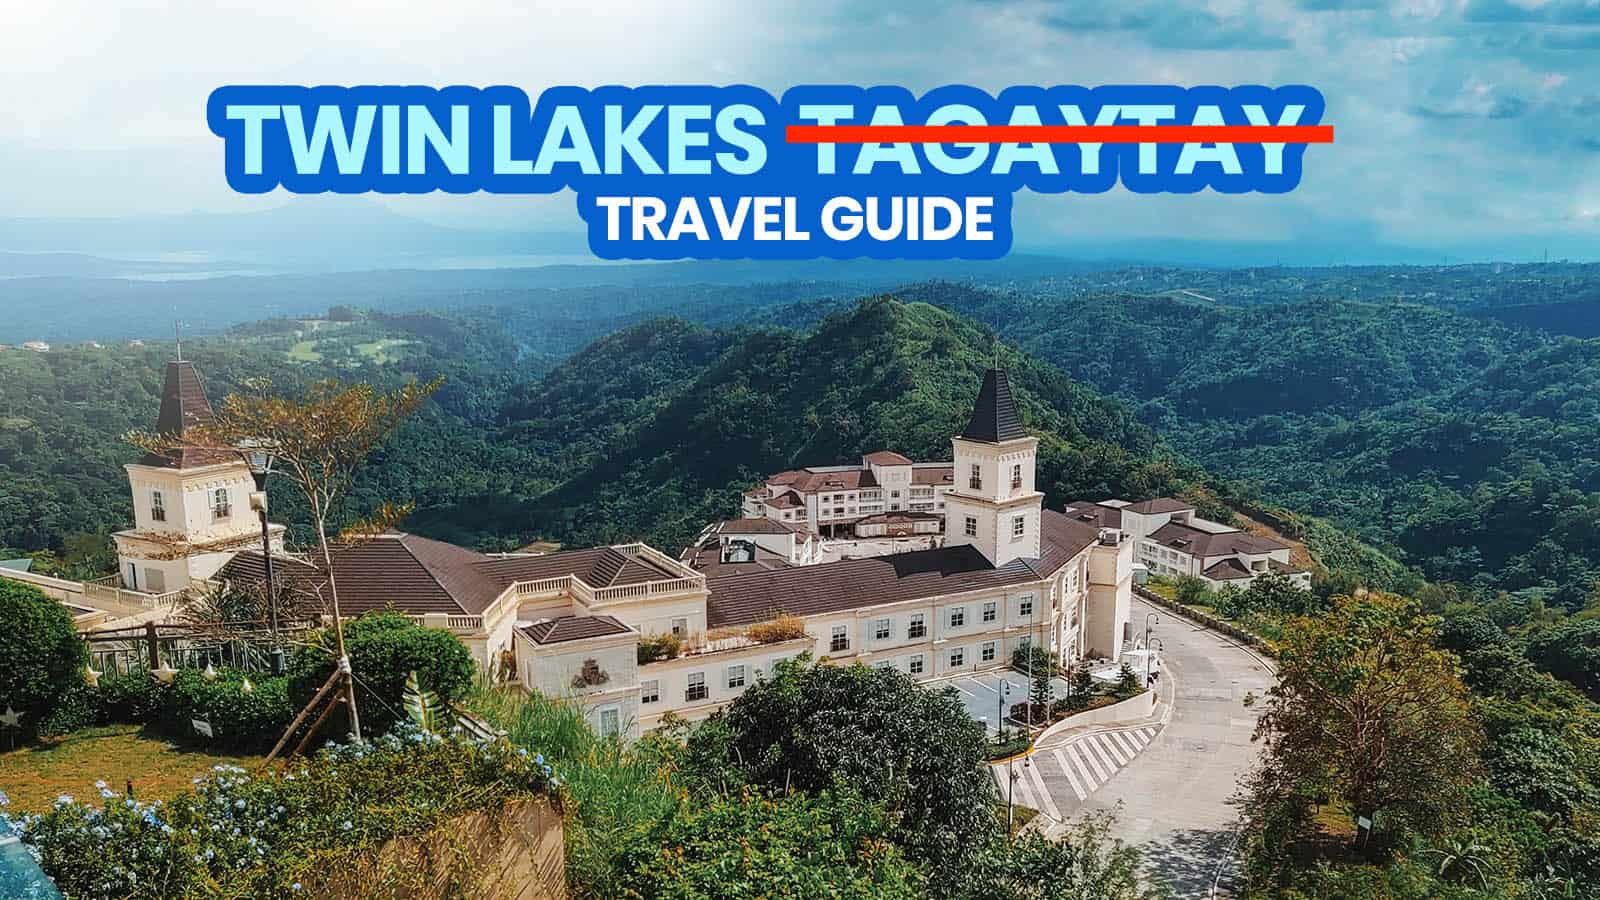 2021 TWIN LAKES TAGAYTAY: Restaurants, Opening Hours & New Normal Guidelines